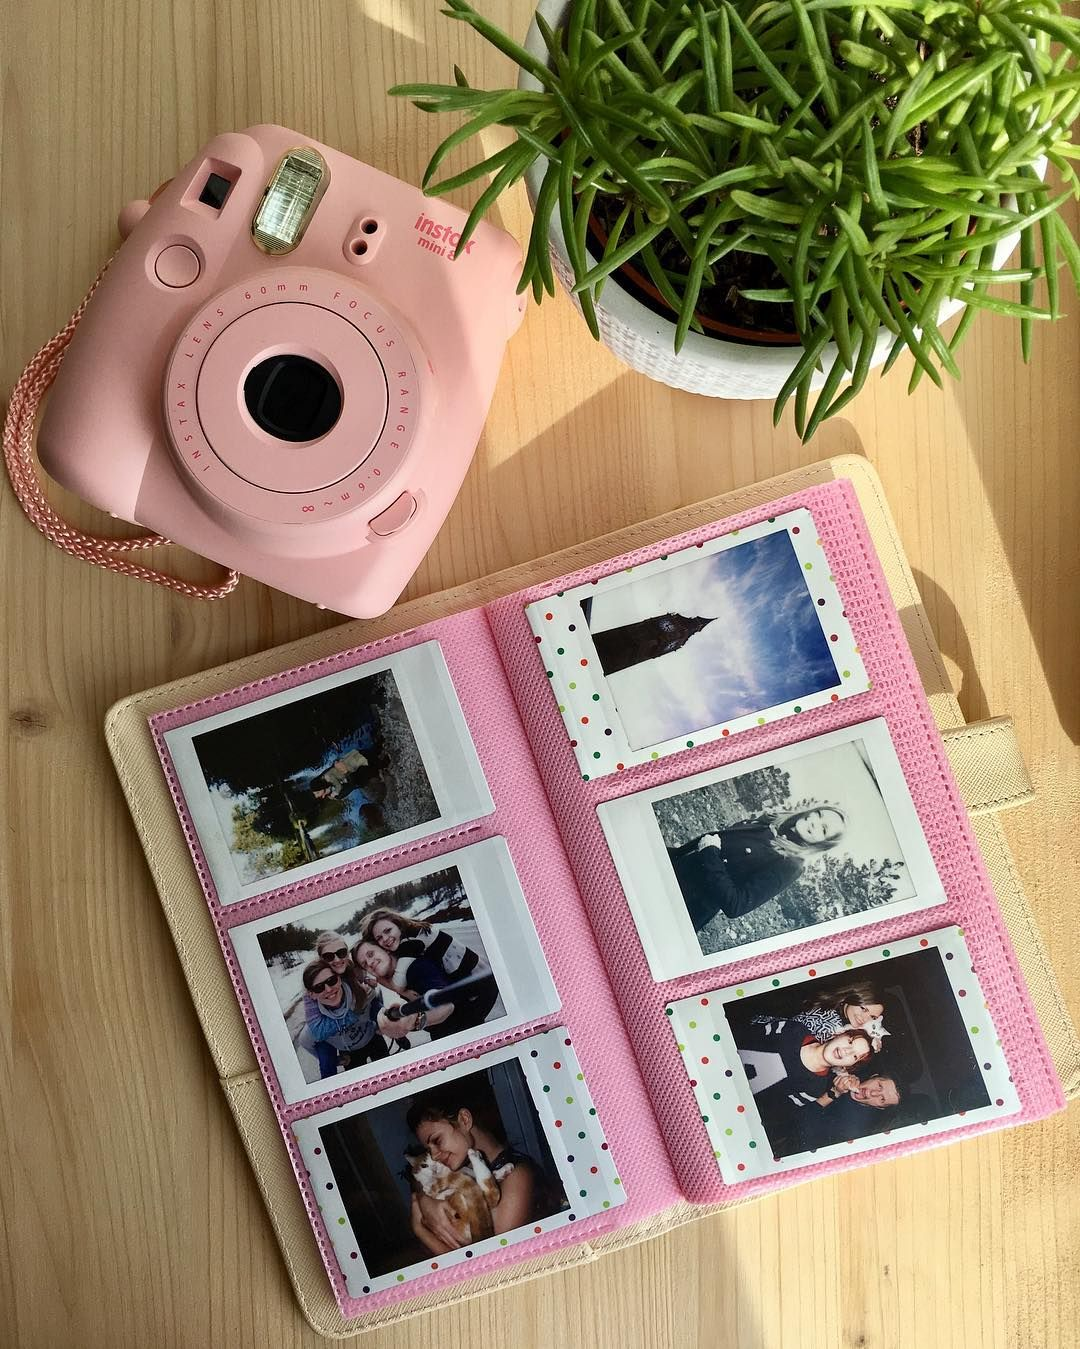 Find Somewhere Special To Treasure Your Memories At Instant Snap